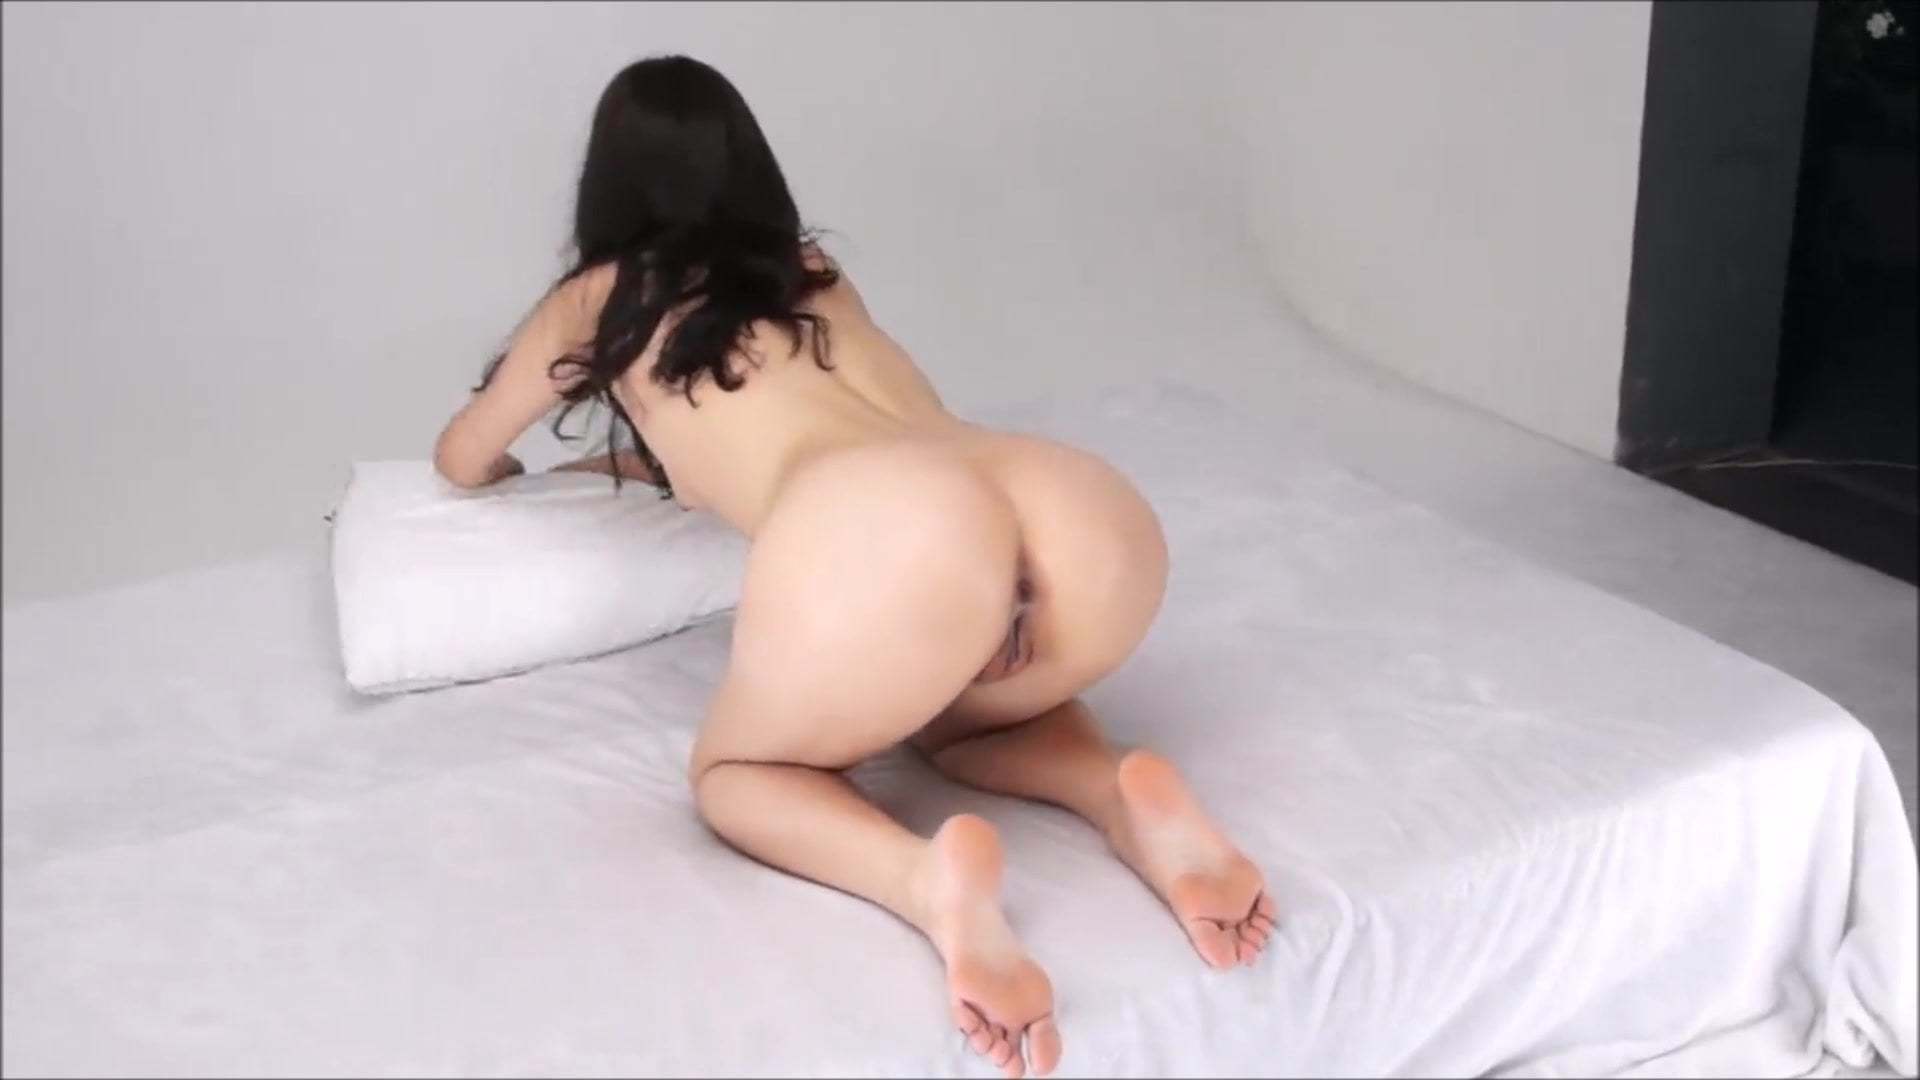 Asian Amateur Nude Model